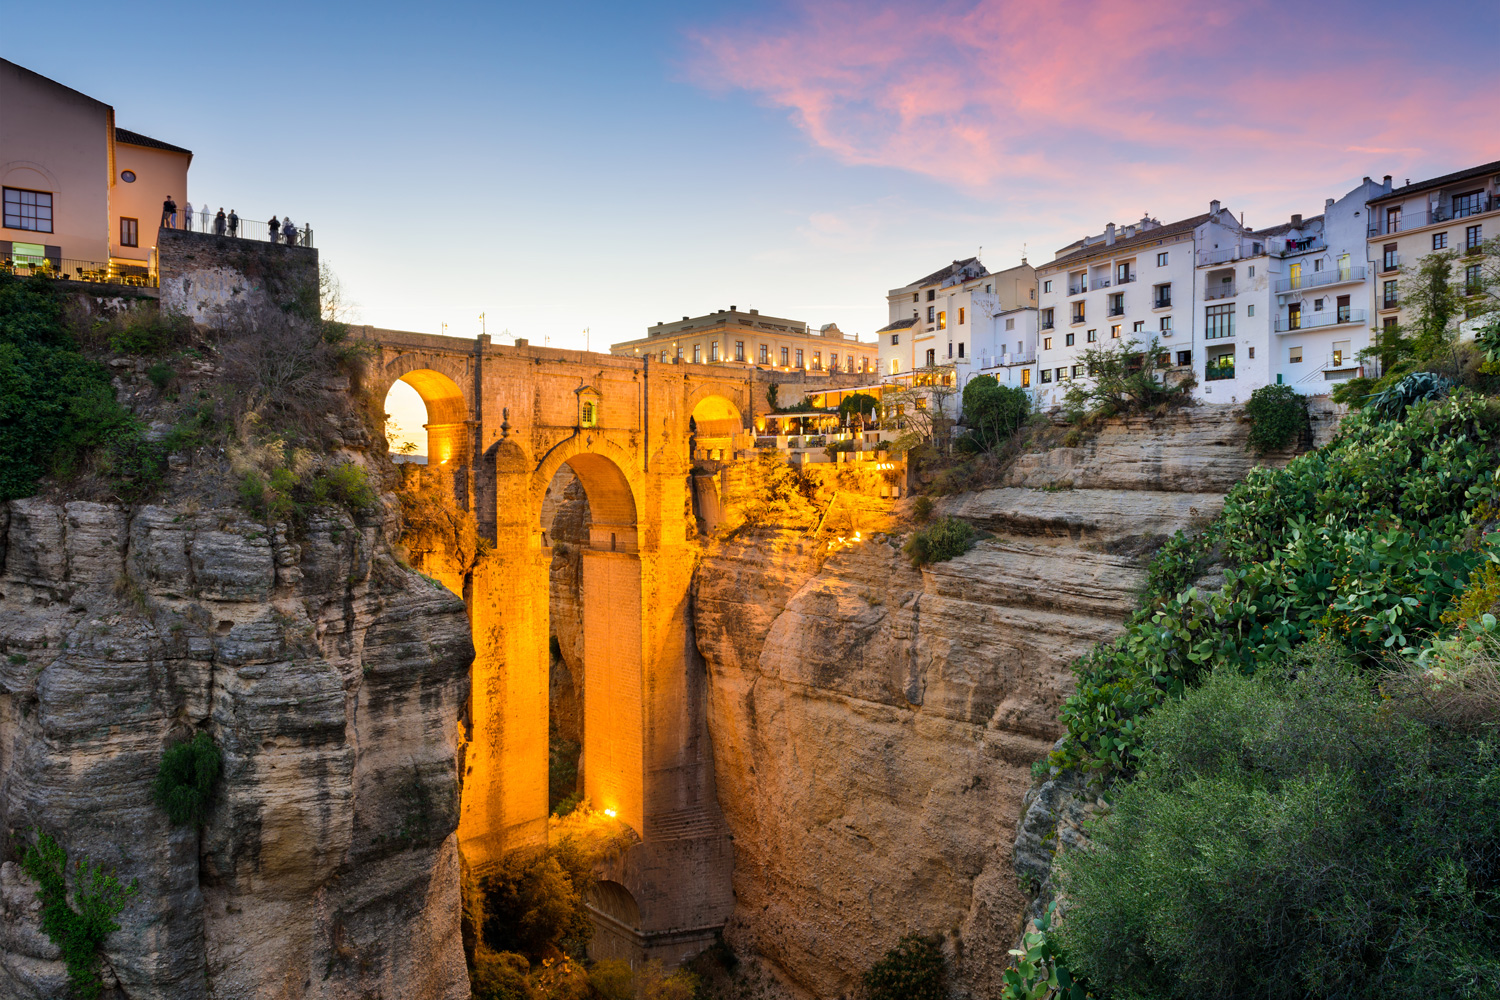 Puente Nuevo Bridge over the Tajo Gorge, Ronda, Spain